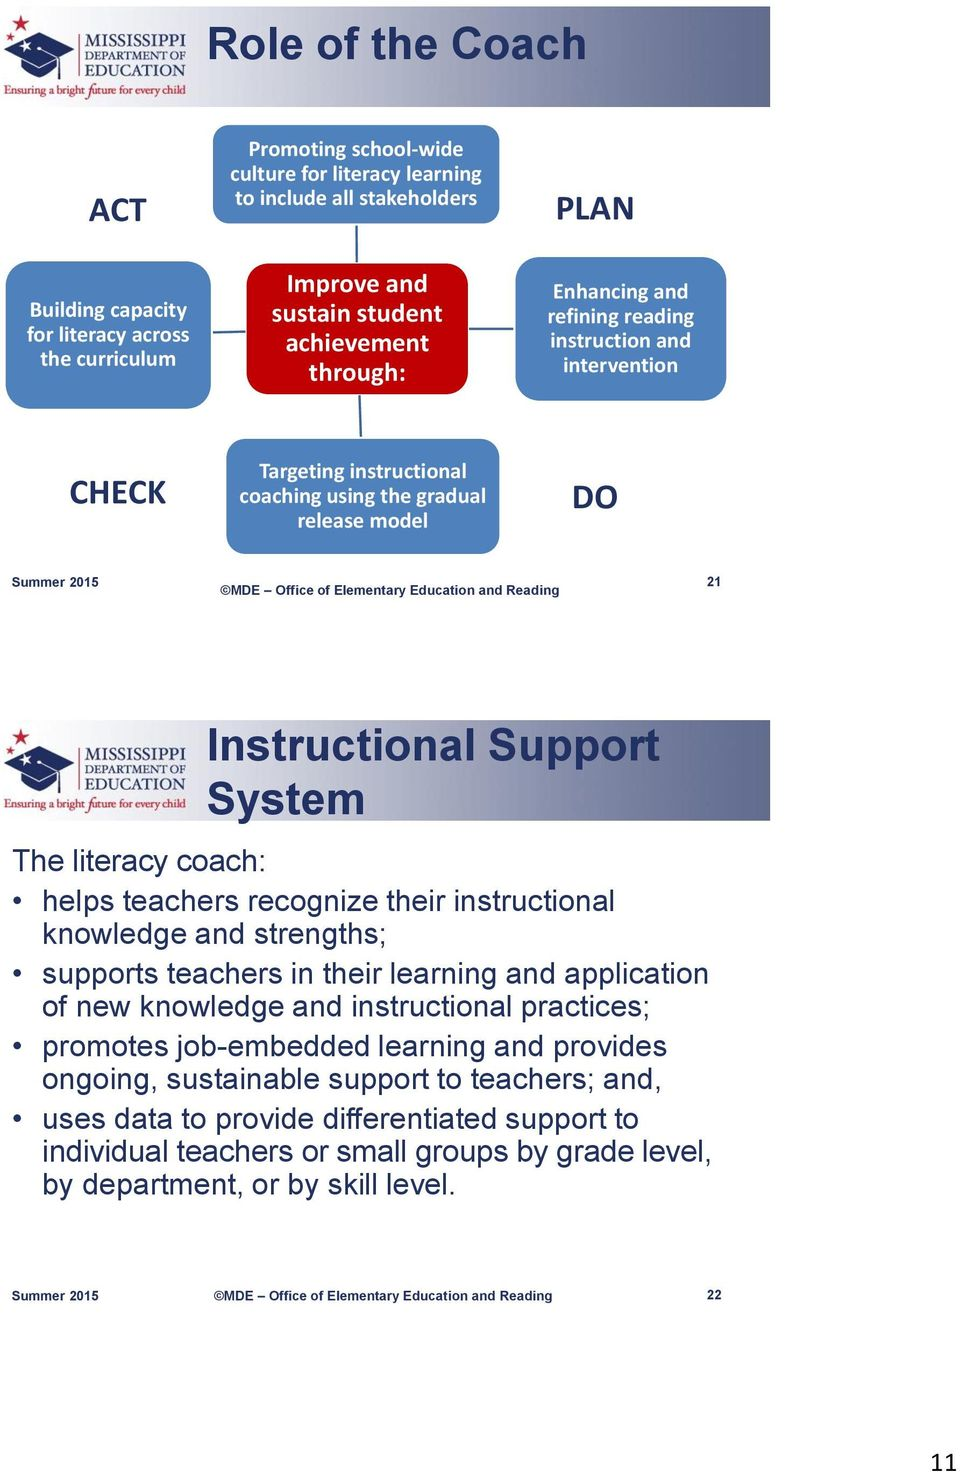 coach: helps teachers recognize their instructional knowledge and strengths; supports teachers in their learning and application of new knowledge and instructional practices; promotes job-embedded